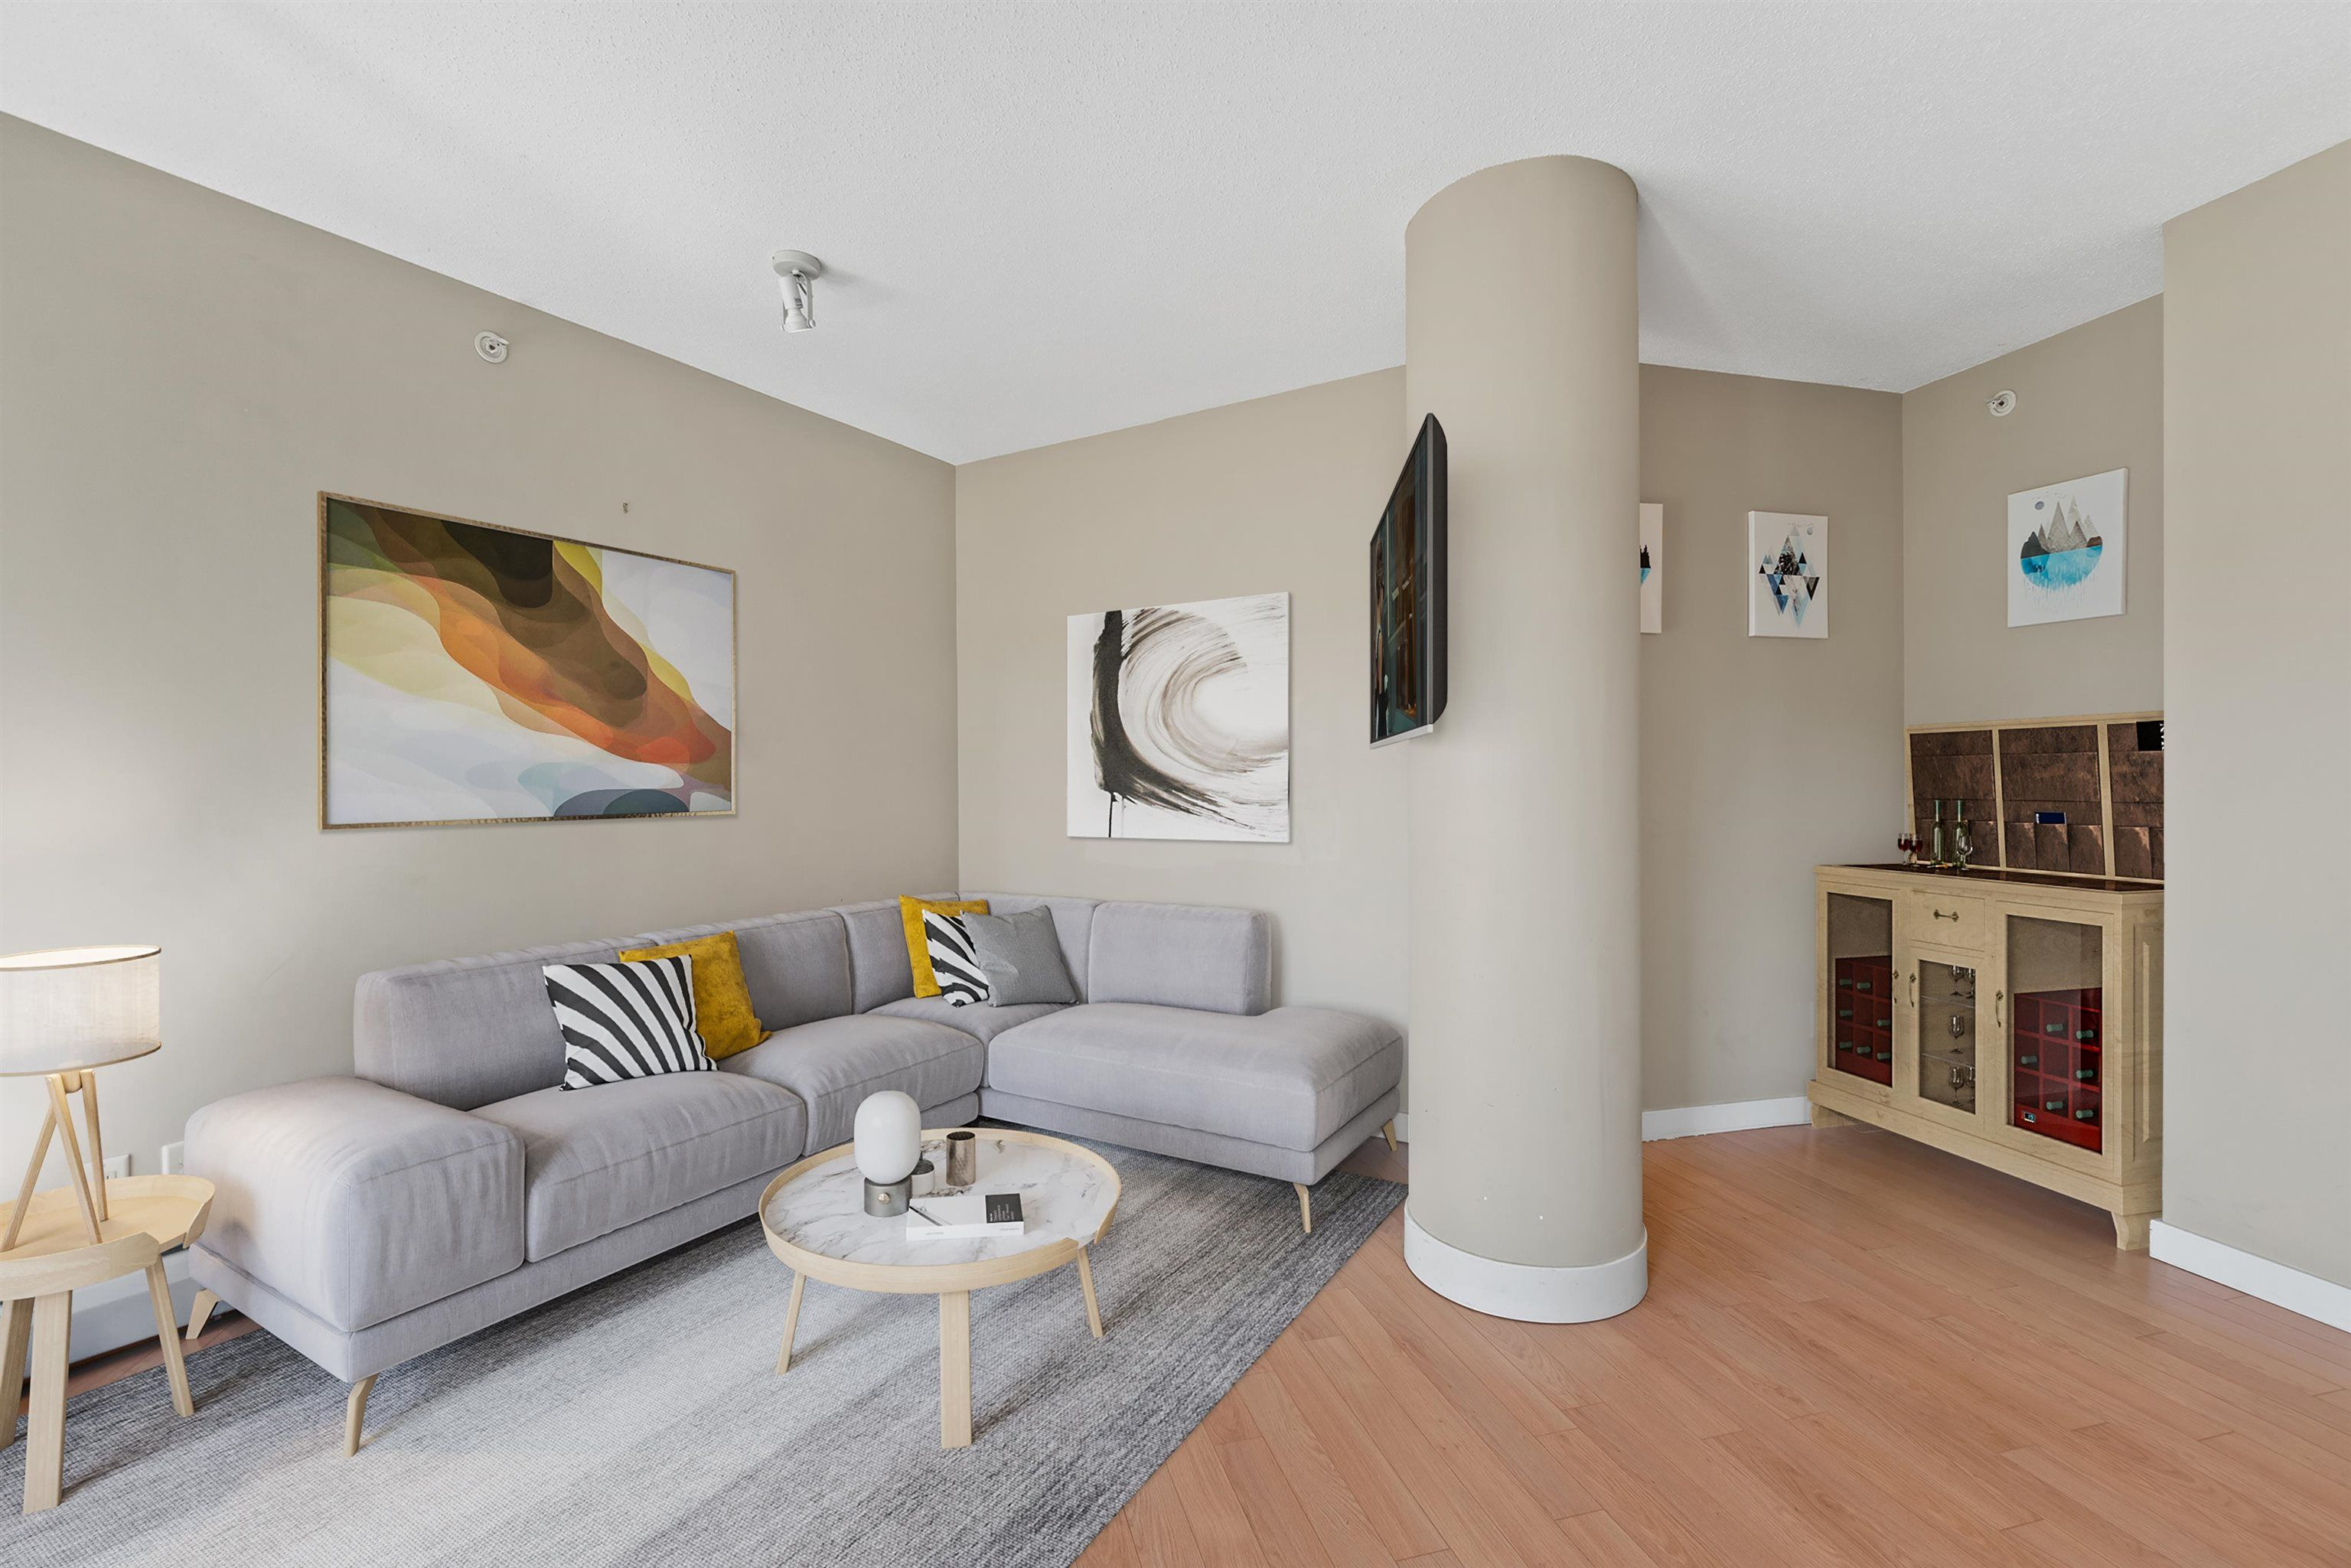 Main Photo: 806 58 KEEFER PLACE in Vancouver: Downtown VW Condo for sale (Vancouver West)  : MLS®# R2609426